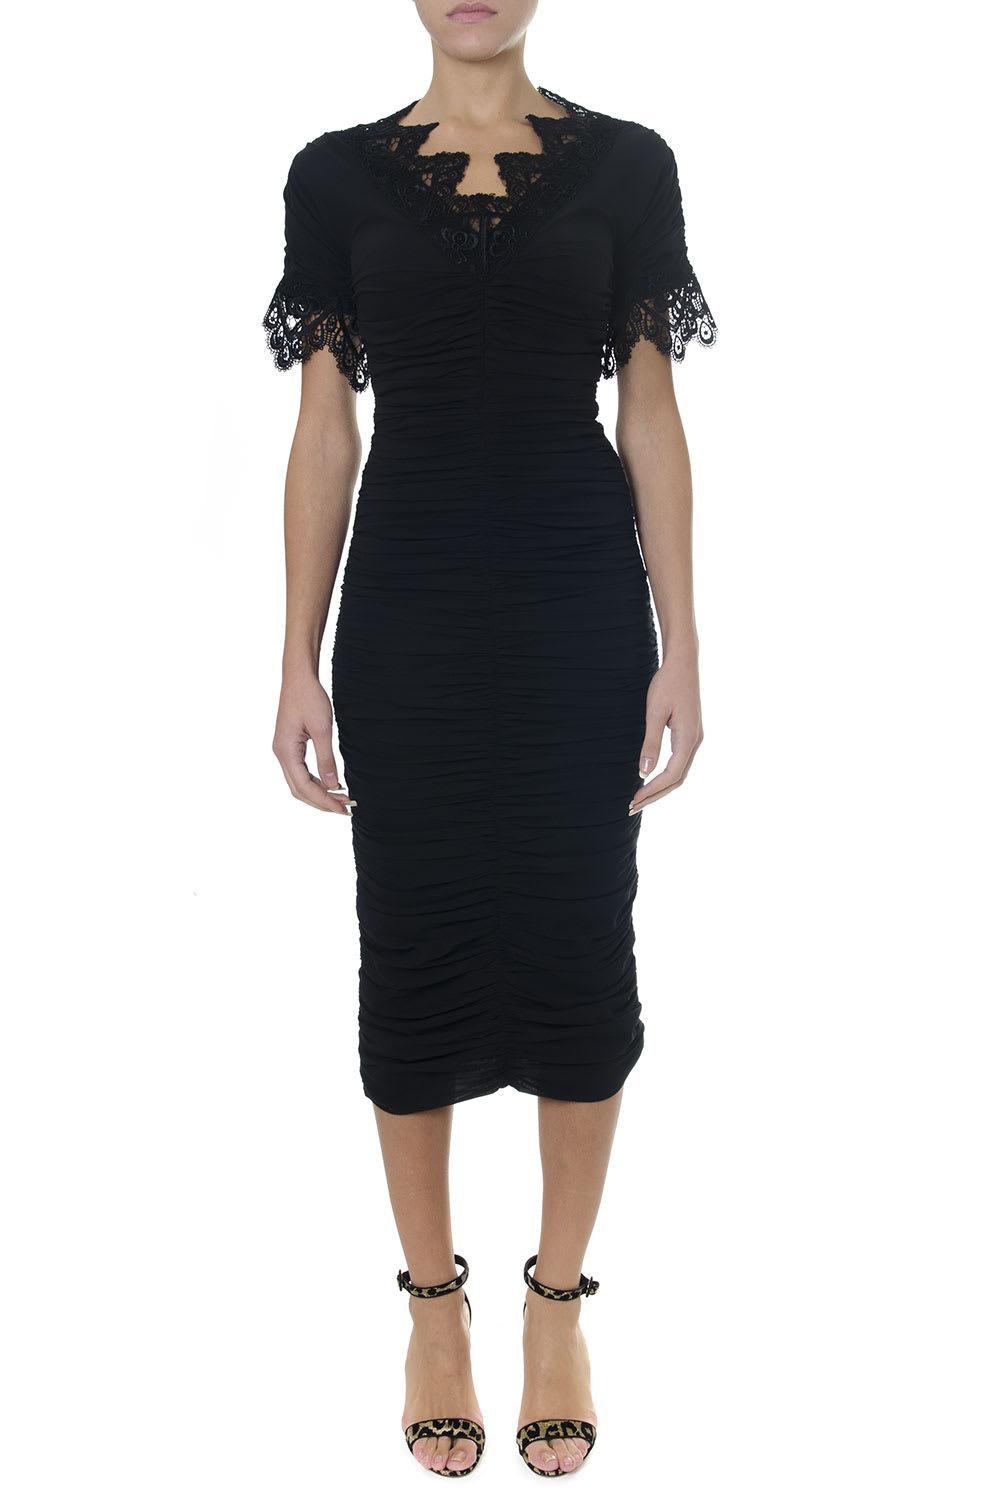 Dolce & Gabbana Black Medium-long Georgette Dress